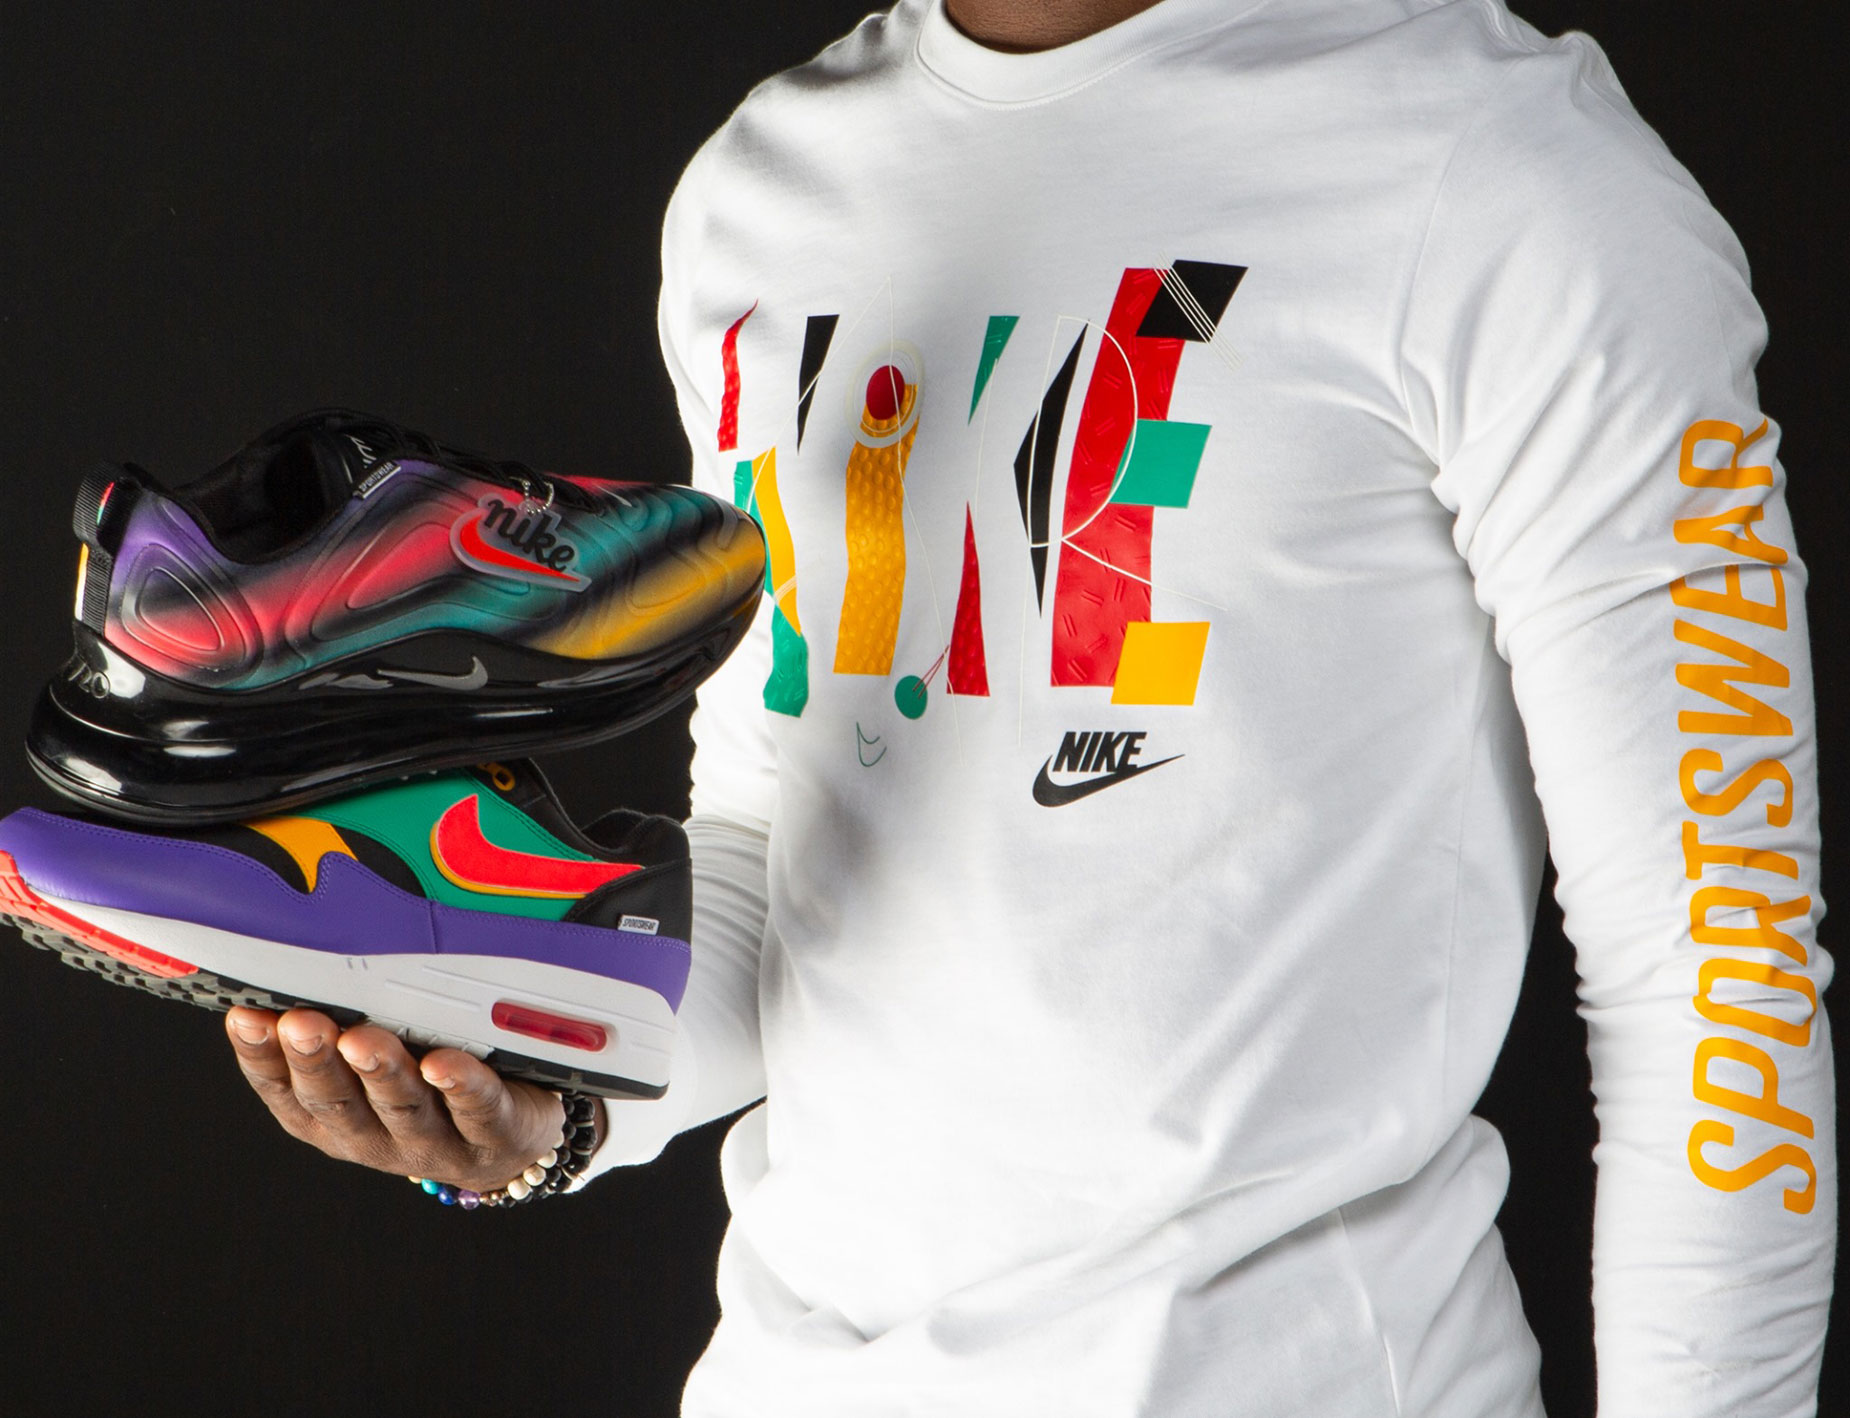 nike-sportswear-game-changer-shirt-shoe-match